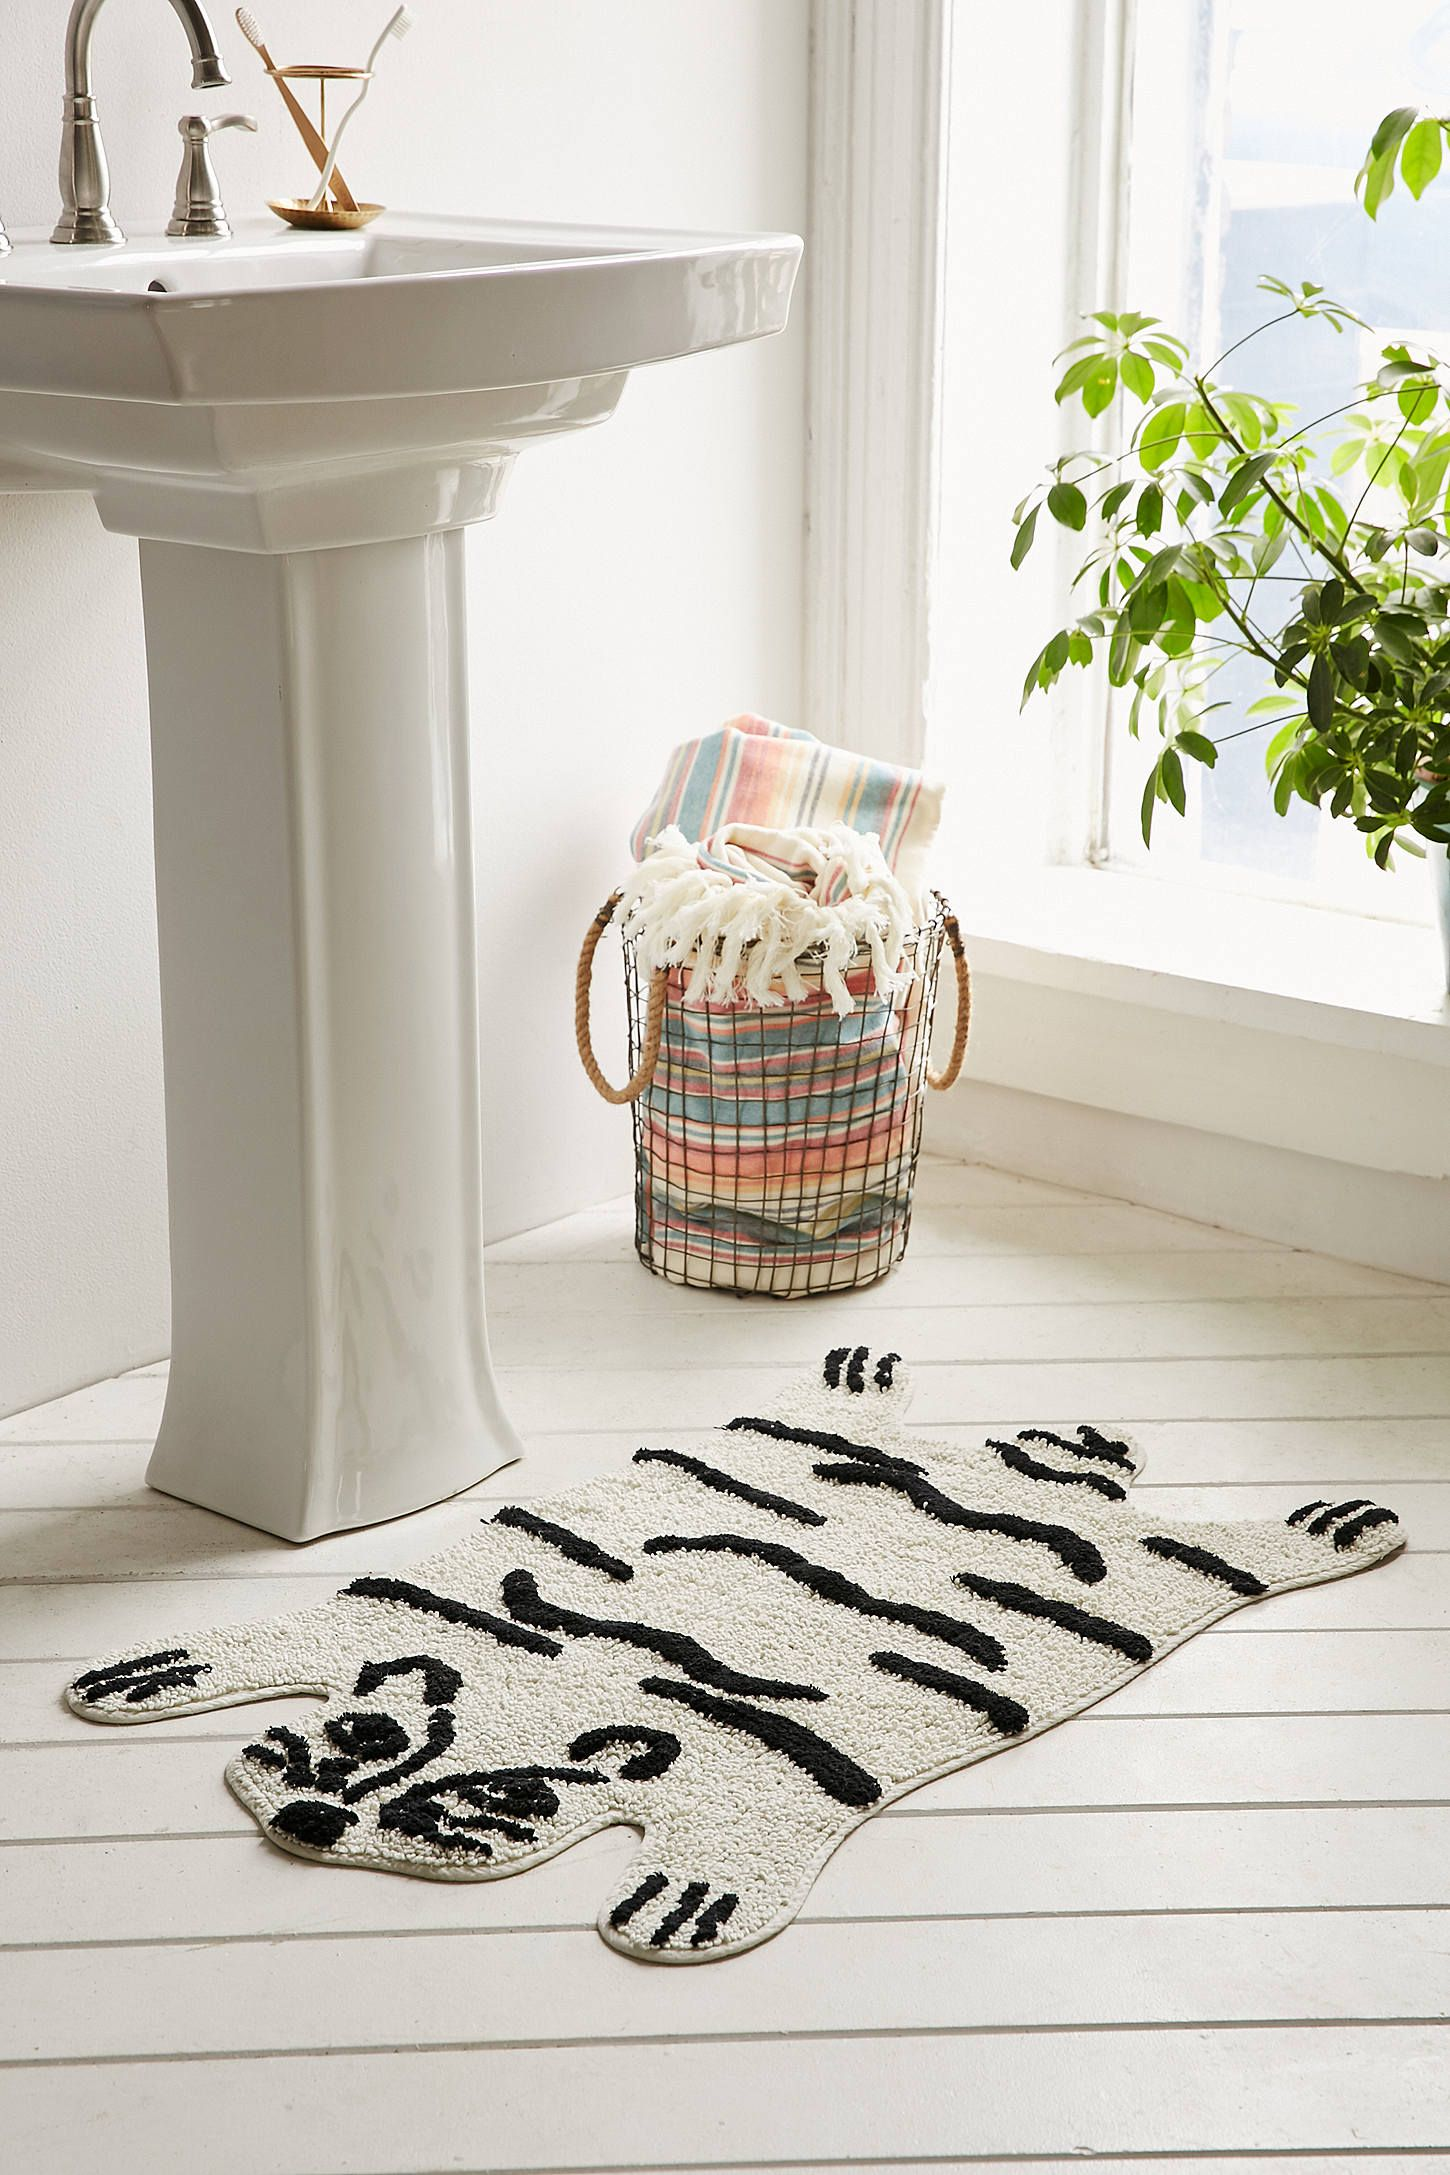 outfitters cloud bath mat pinterest pin winking urban